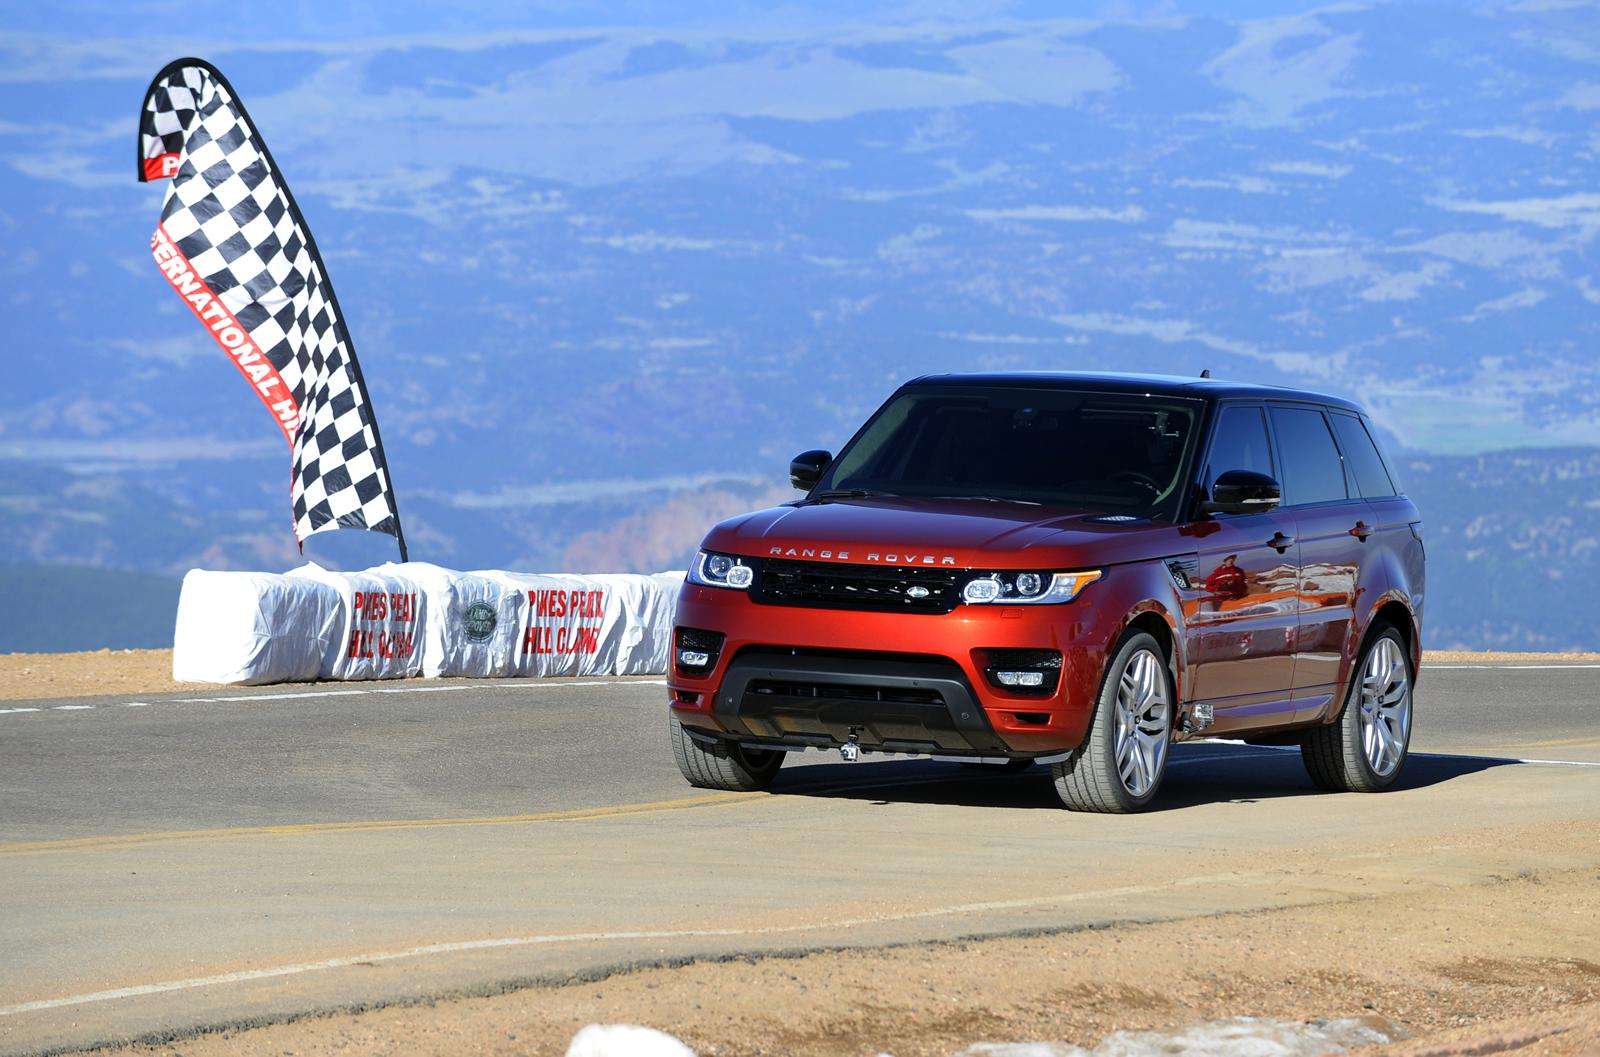 2014 Range Rover Sport at Pikes Peak